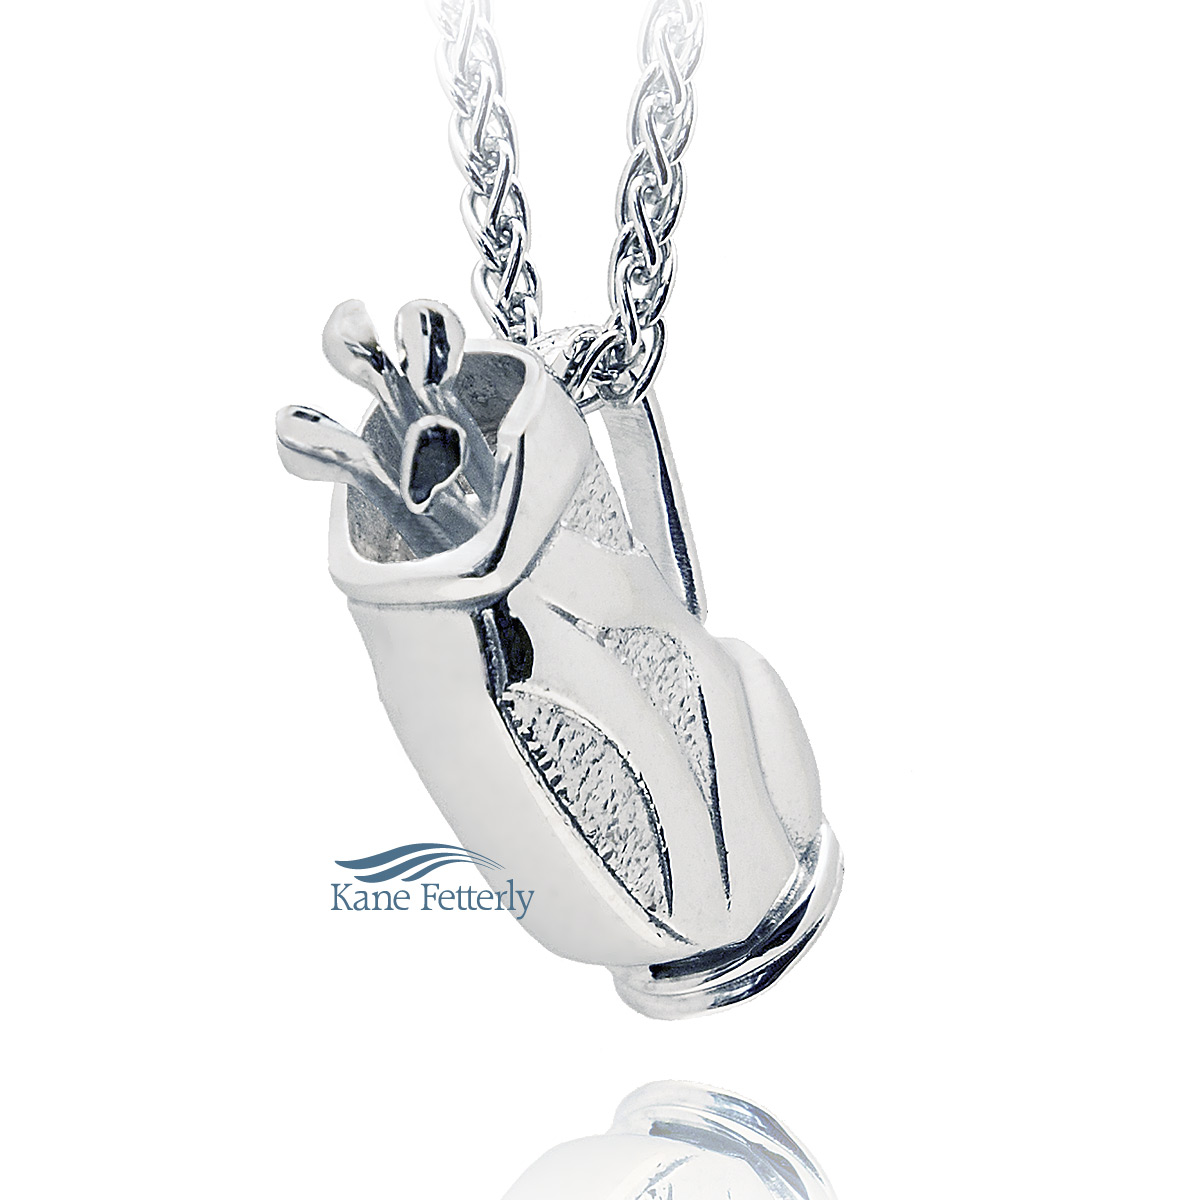 J0183 Golf bag pendant in sterling silver